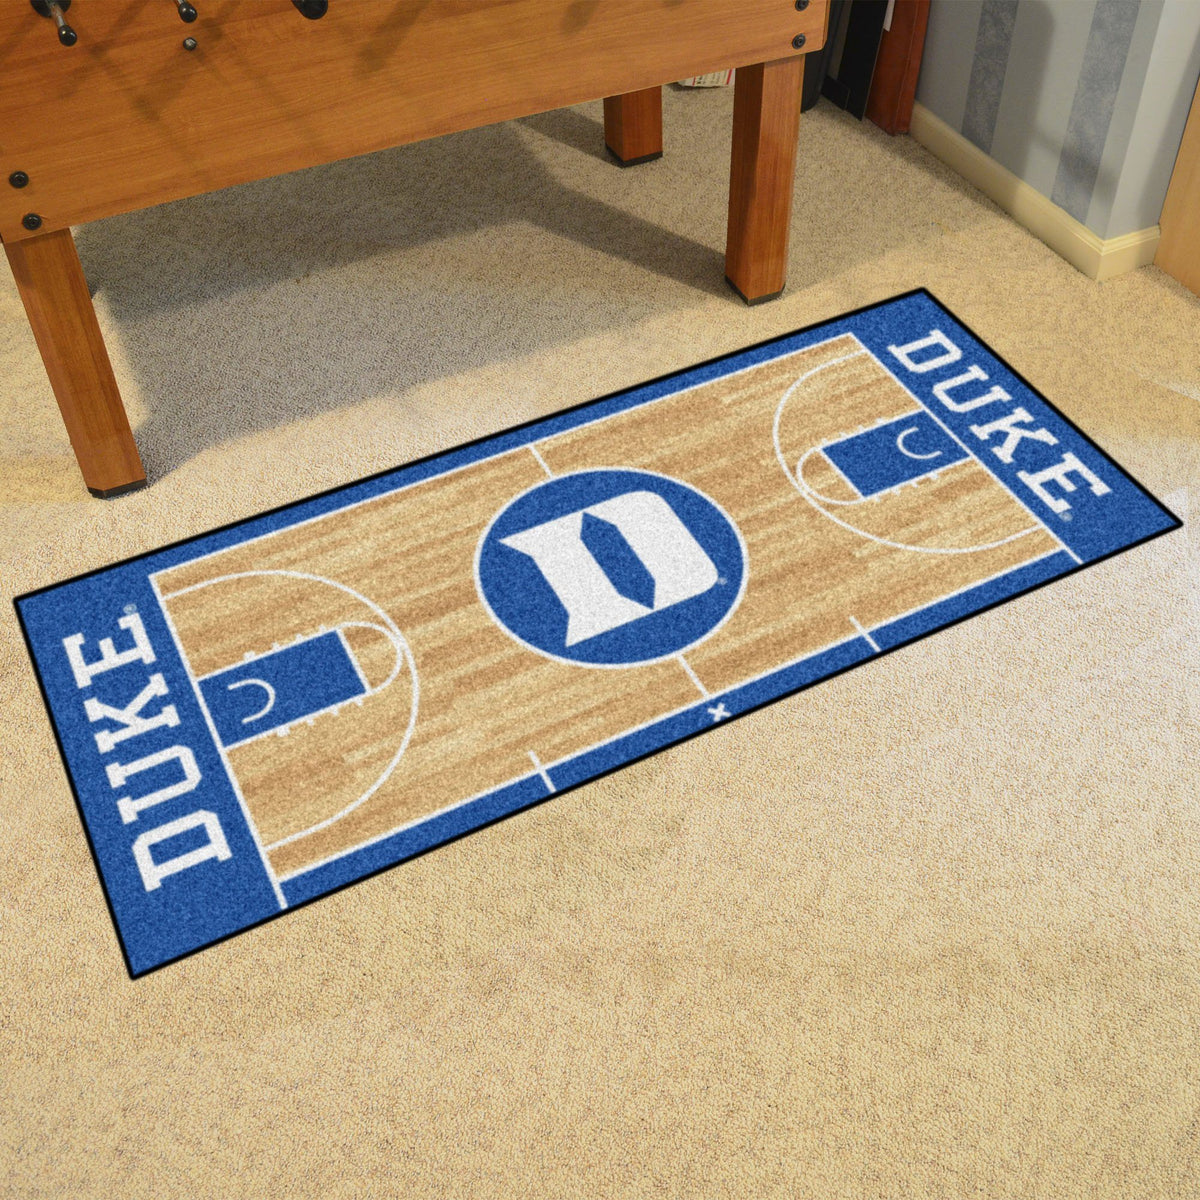 Collegiate - NCAA Basketball Runner Collegiate Mats, Rectangular Mats, NCAA Basketball Runner, Collegiate, Home Fan Mats Duke